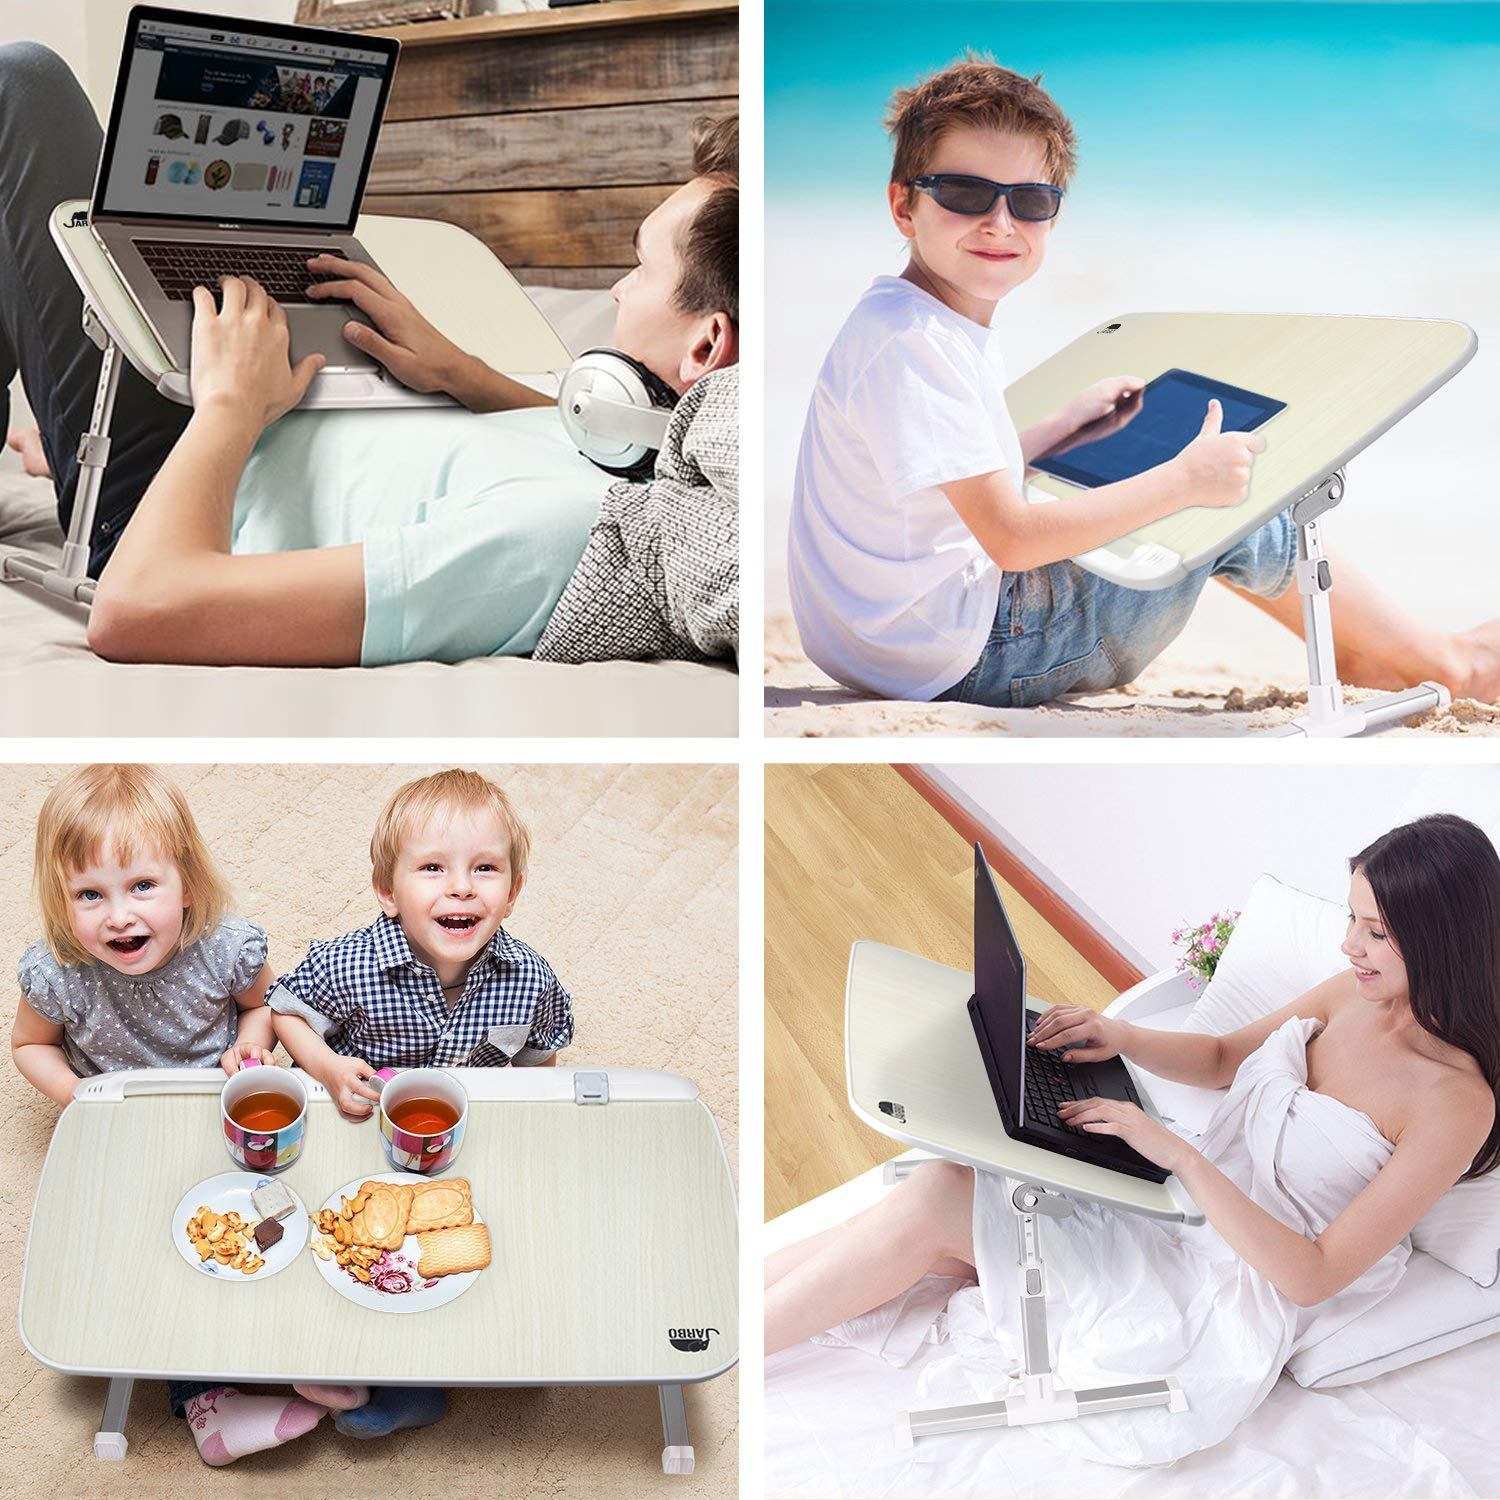 Laptop Stand for Bed Foldable Table Portable Desk Bed Desk JARBO Adjustable Laptop Desk Not for Left Handed People Laptop Table Bed Tray Bed Table